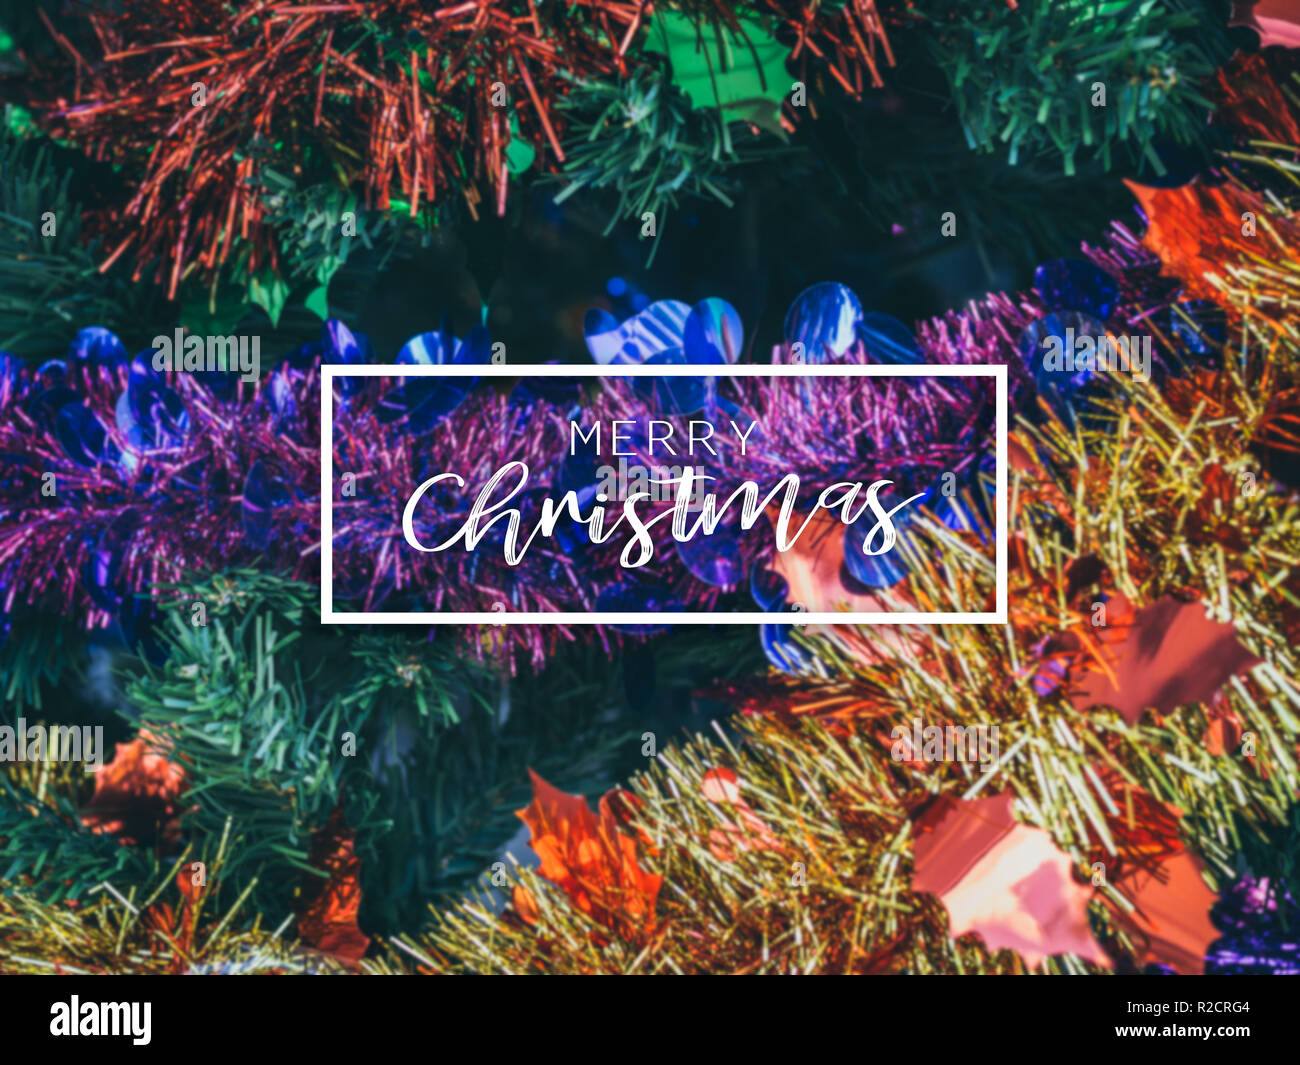 Typographical Merry Christmas Banner. Colorful Christmas background with Christmas ornament prop decoration on Christmas tree. - Stock Image